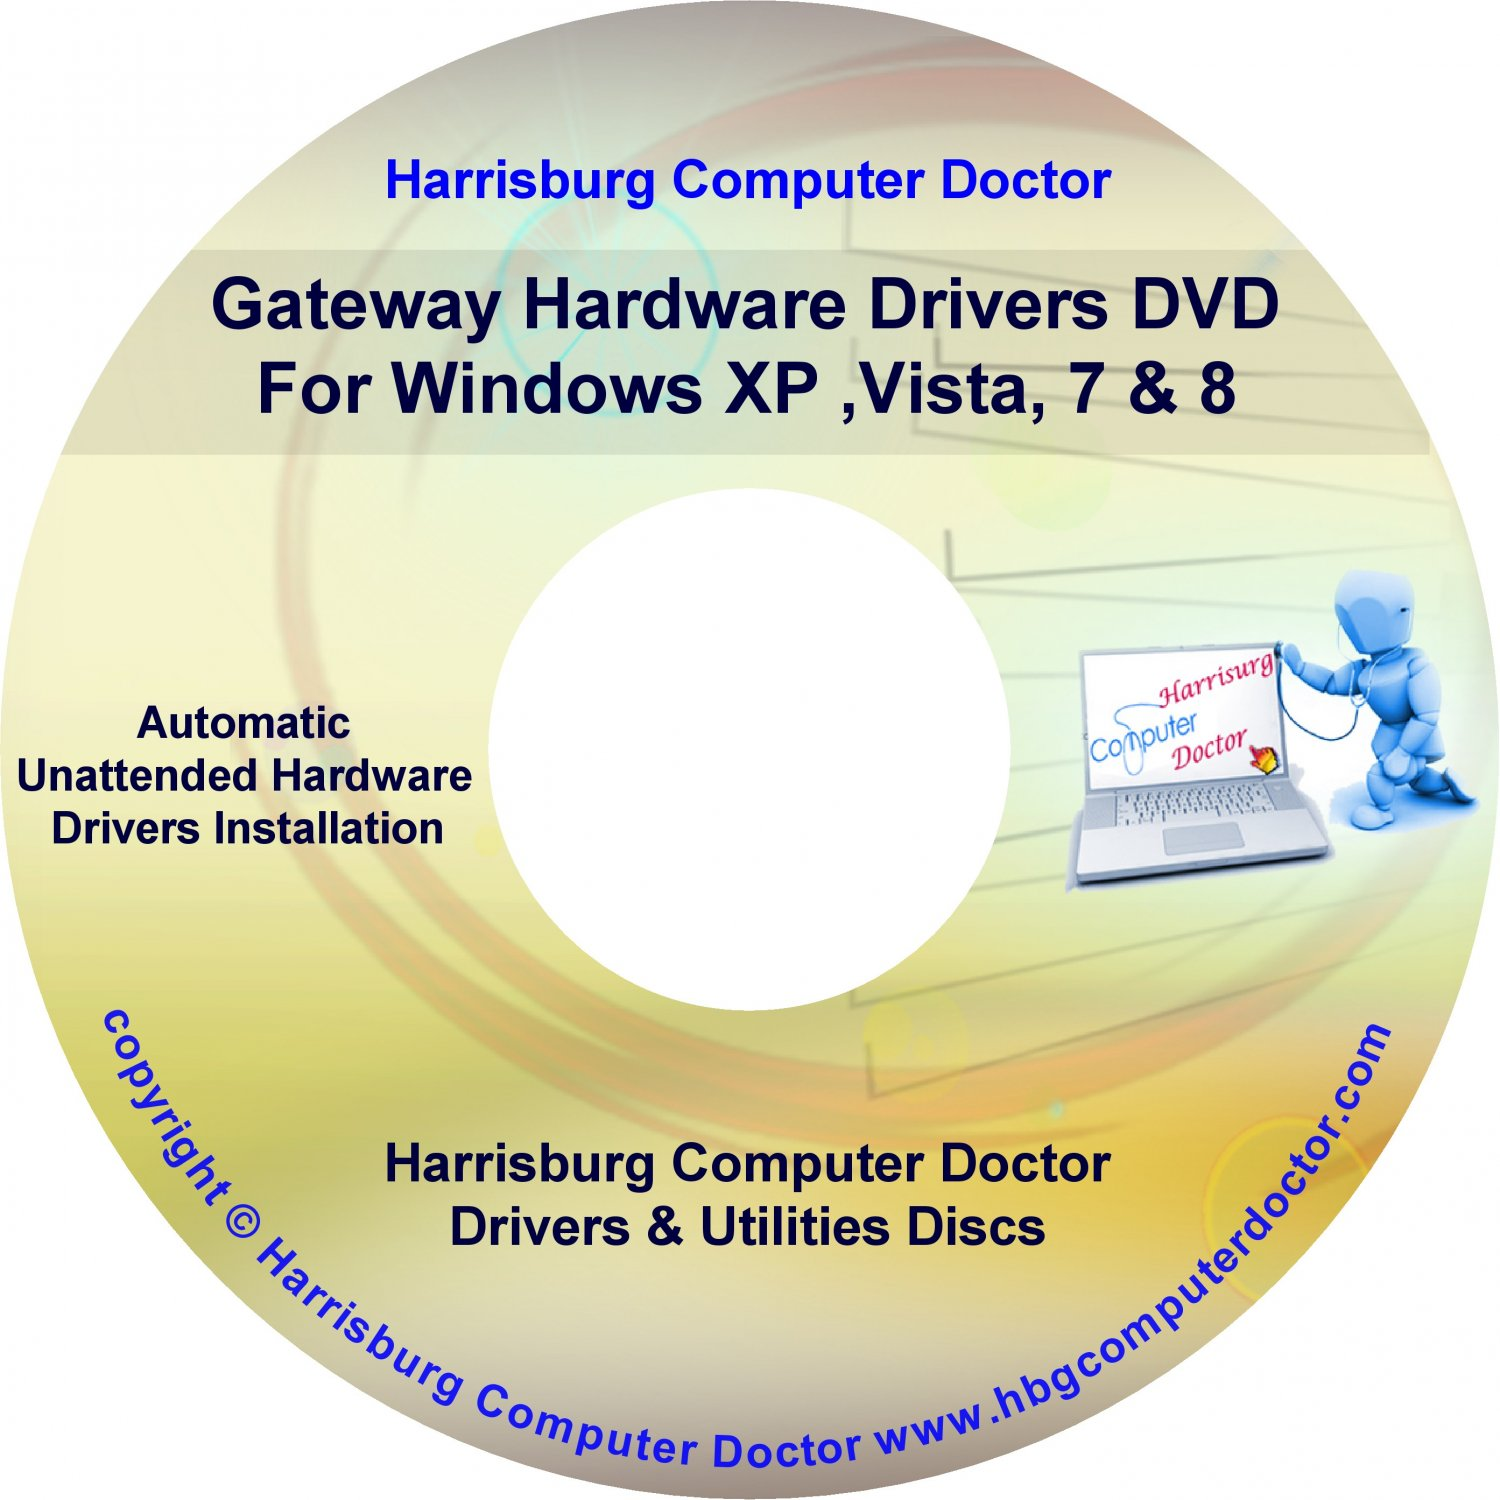 Gateway GT4014j Drivers DVD For Windows, XP, Vista, 7 & 8